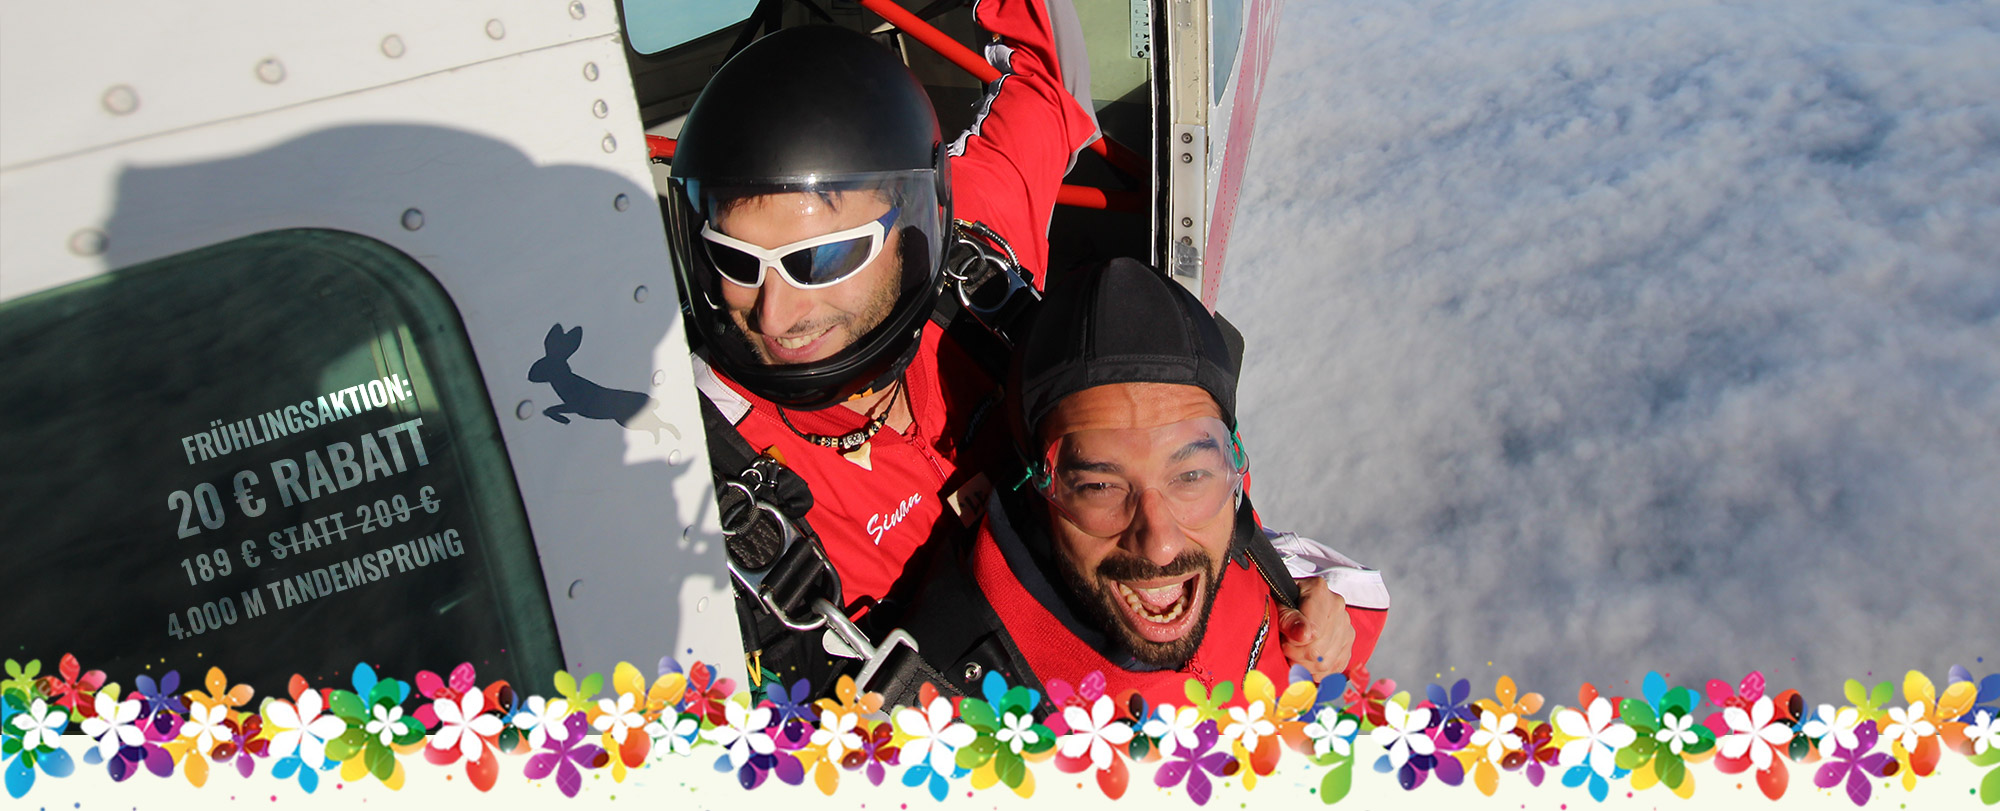 Your tandem jump, now from 159 € - Feel your life I TAKE OFF near Berlin